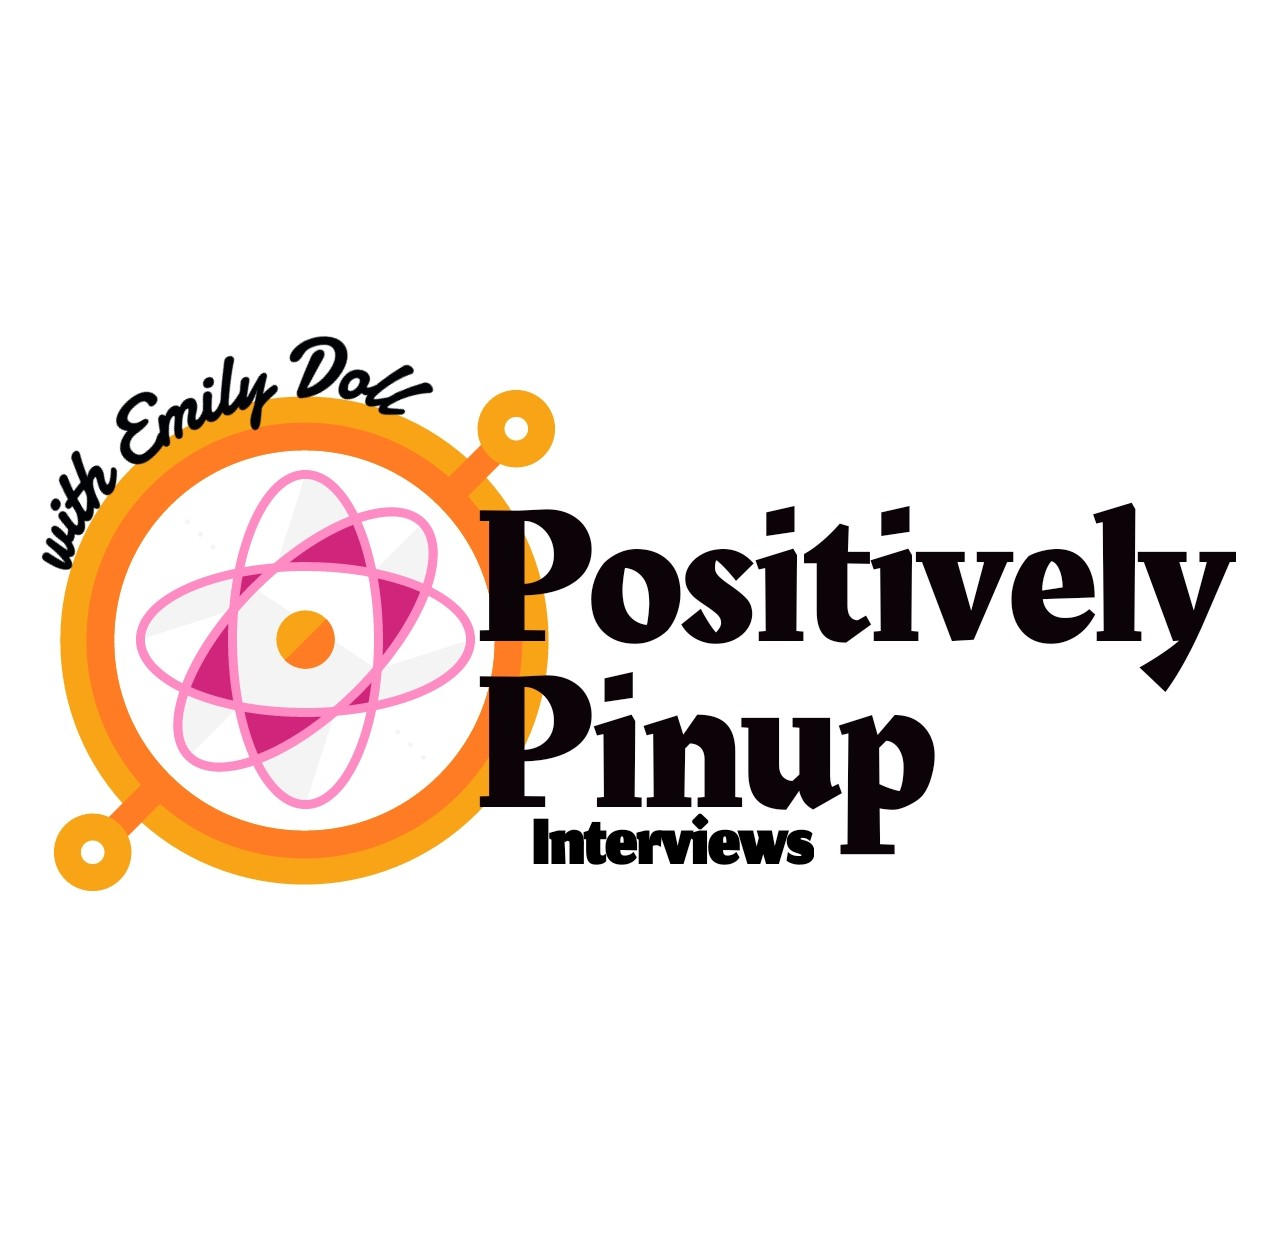 Are You A Positive Pinup?